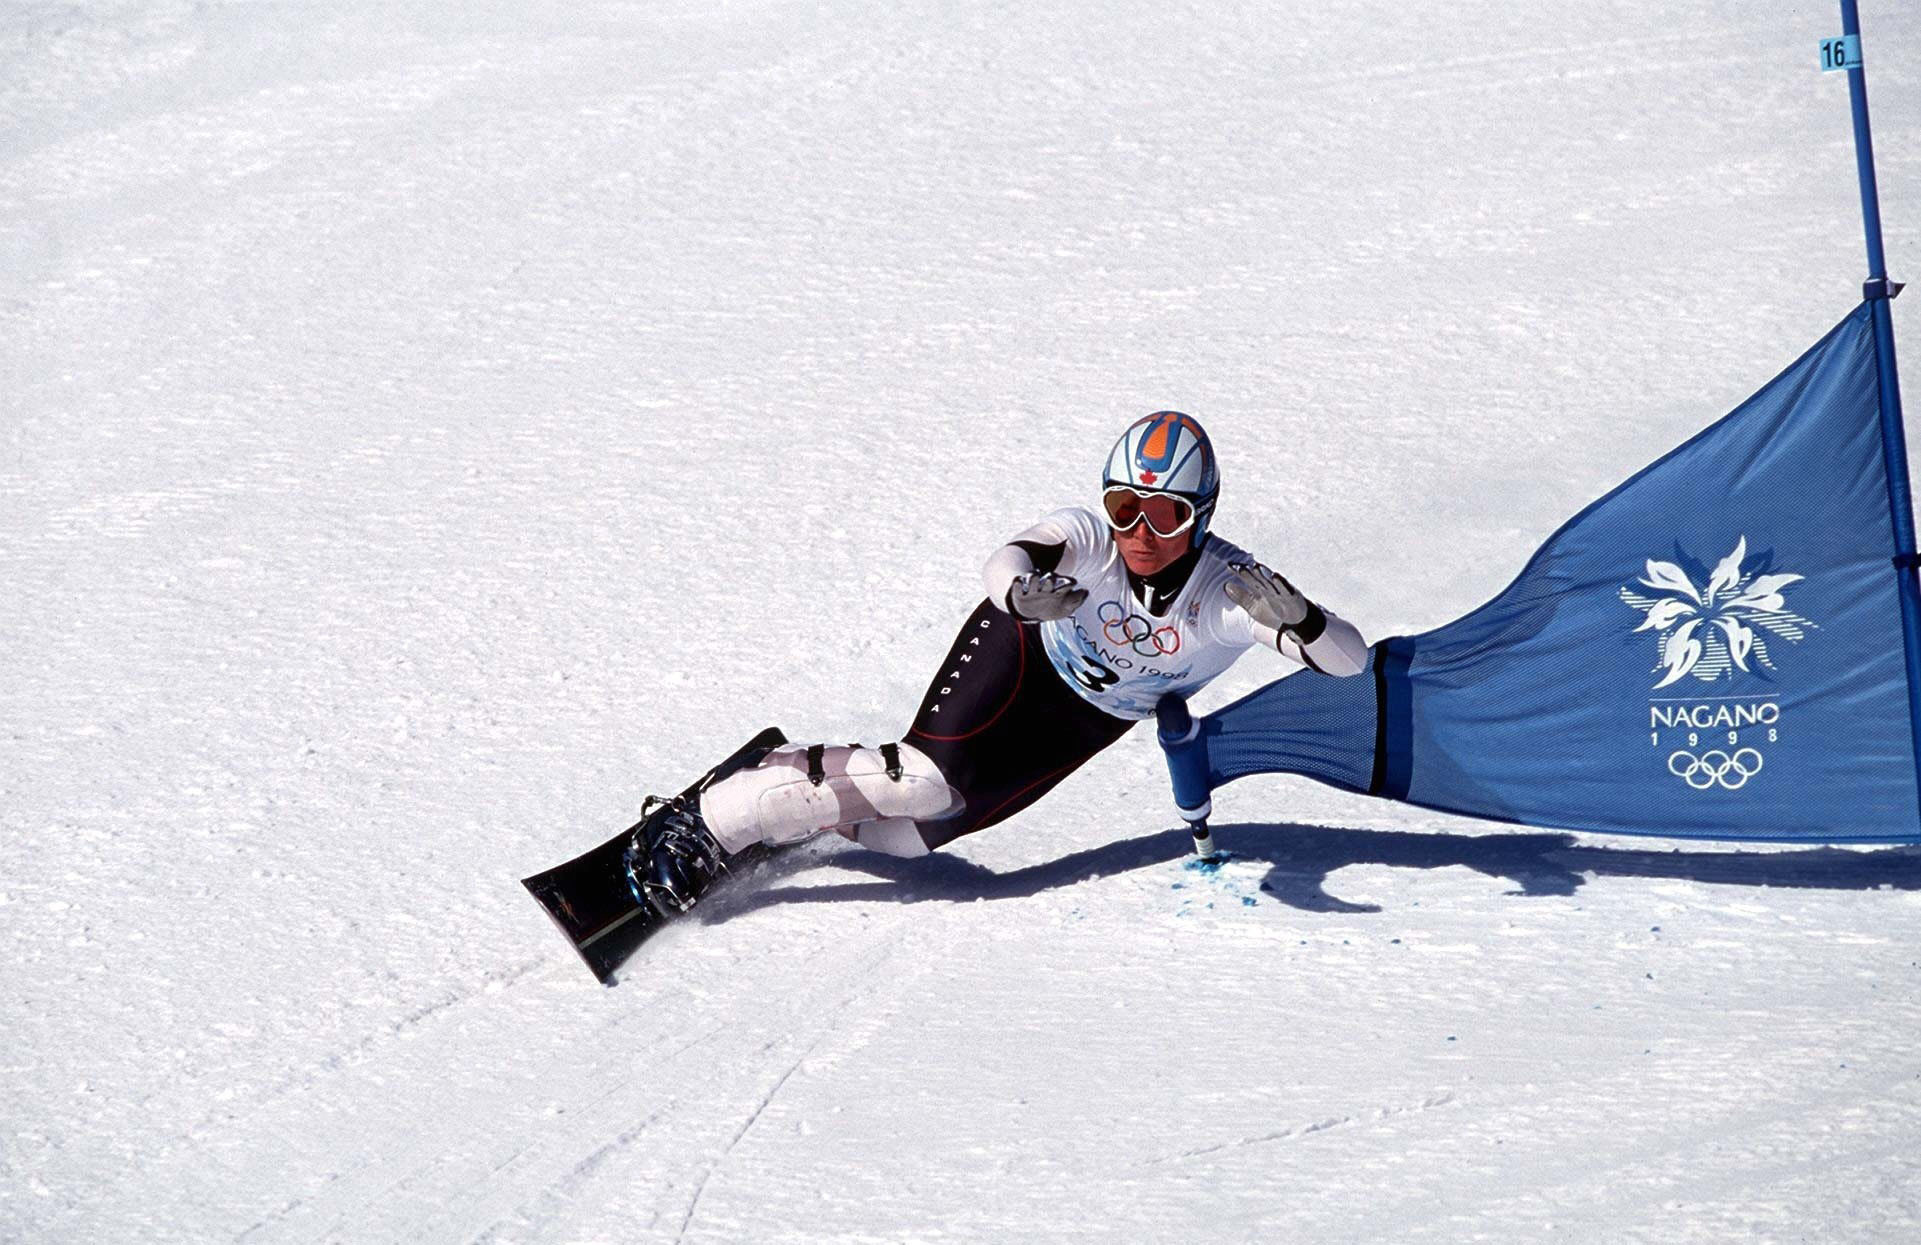 Canada's Ross Rebagliati tested positive for marijuana when snowboarding made its Olympic debut at Nagano in 1998 but was allowed to keep the gold medal because the drug was not banned at the time ©Getty Images